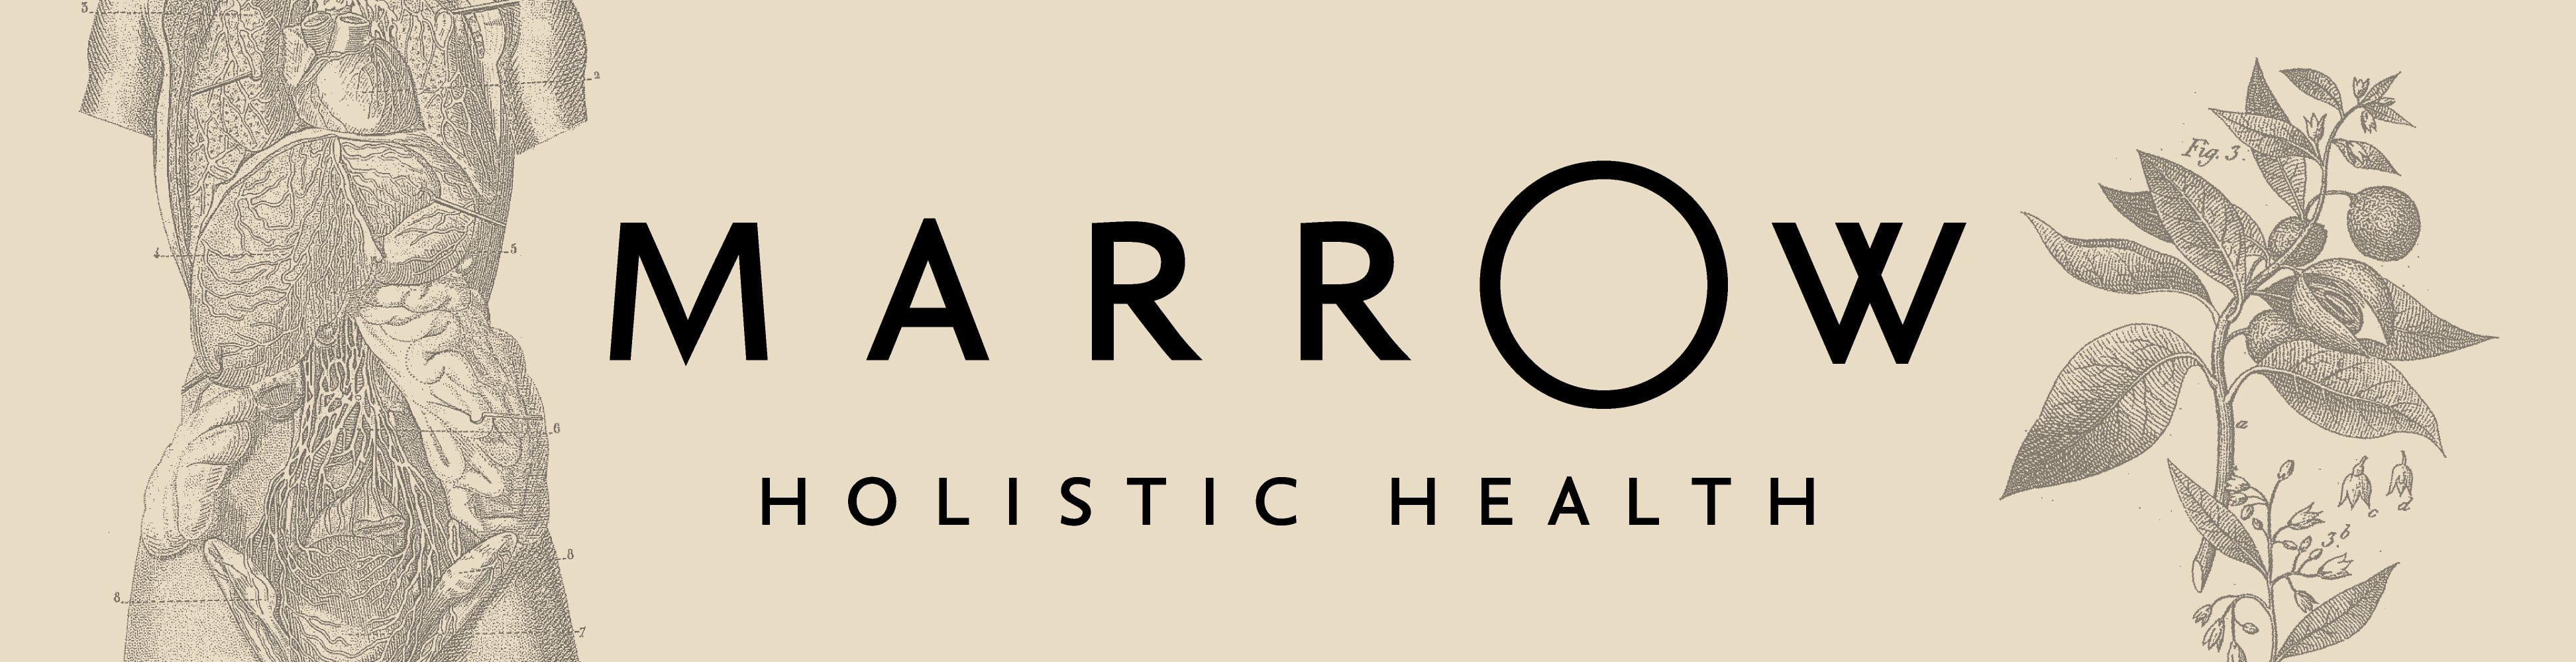 Marrow Holistic Health